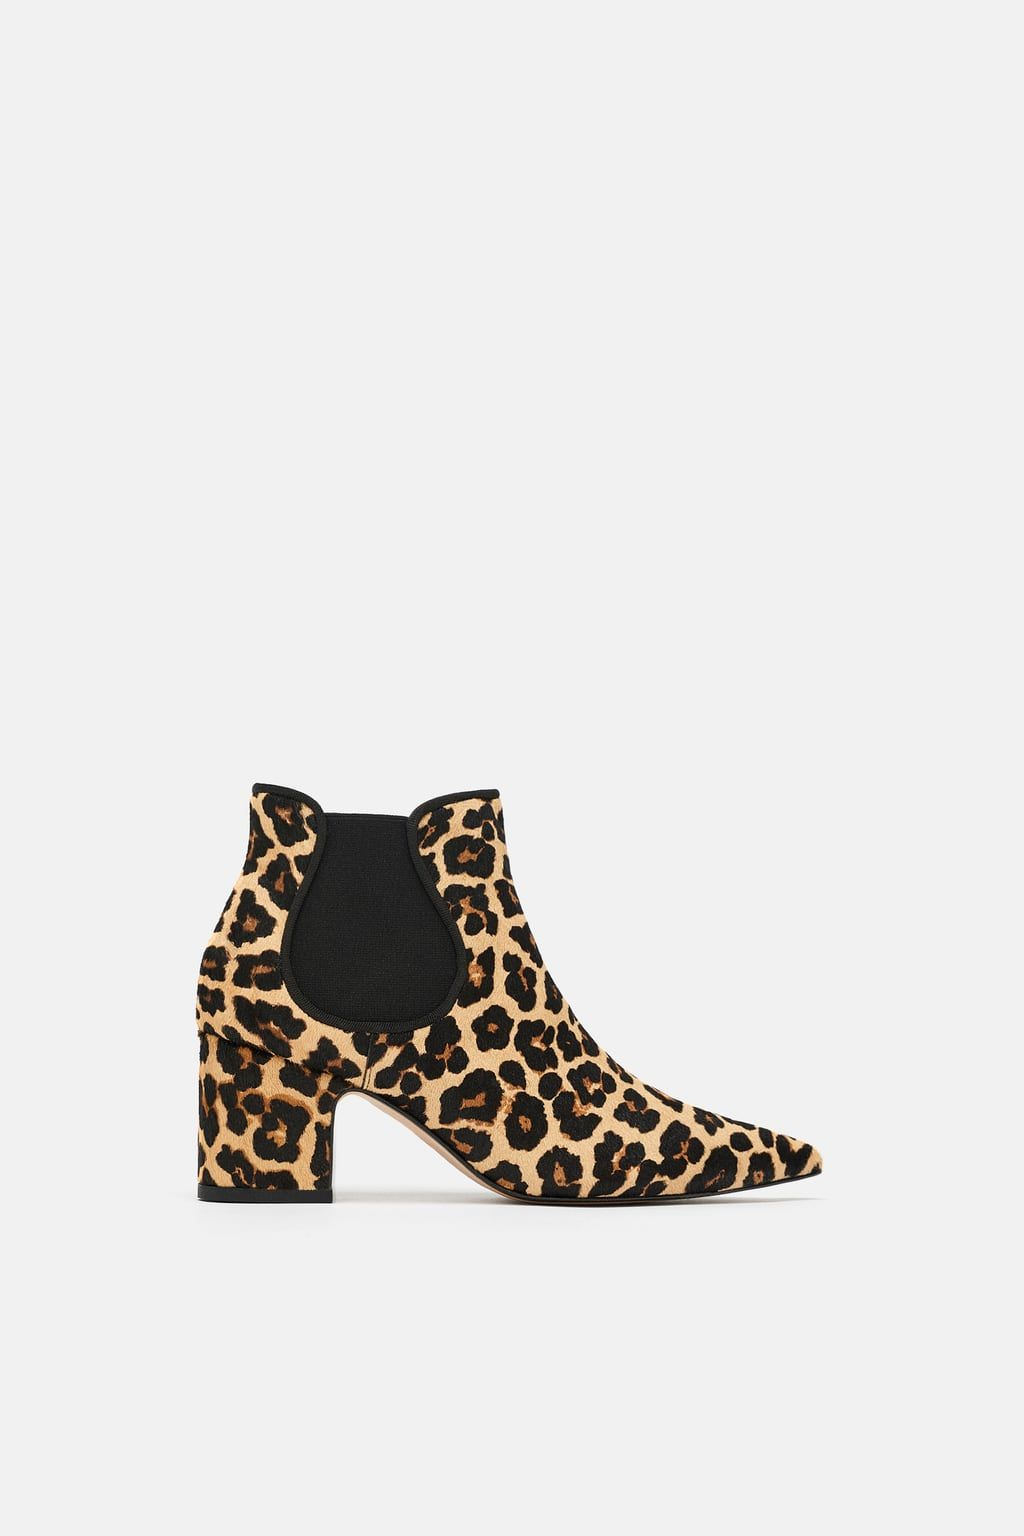 2f687fe6399 Printed leather high-heel ankle boots in 2019 | Boots! | Leopard ...